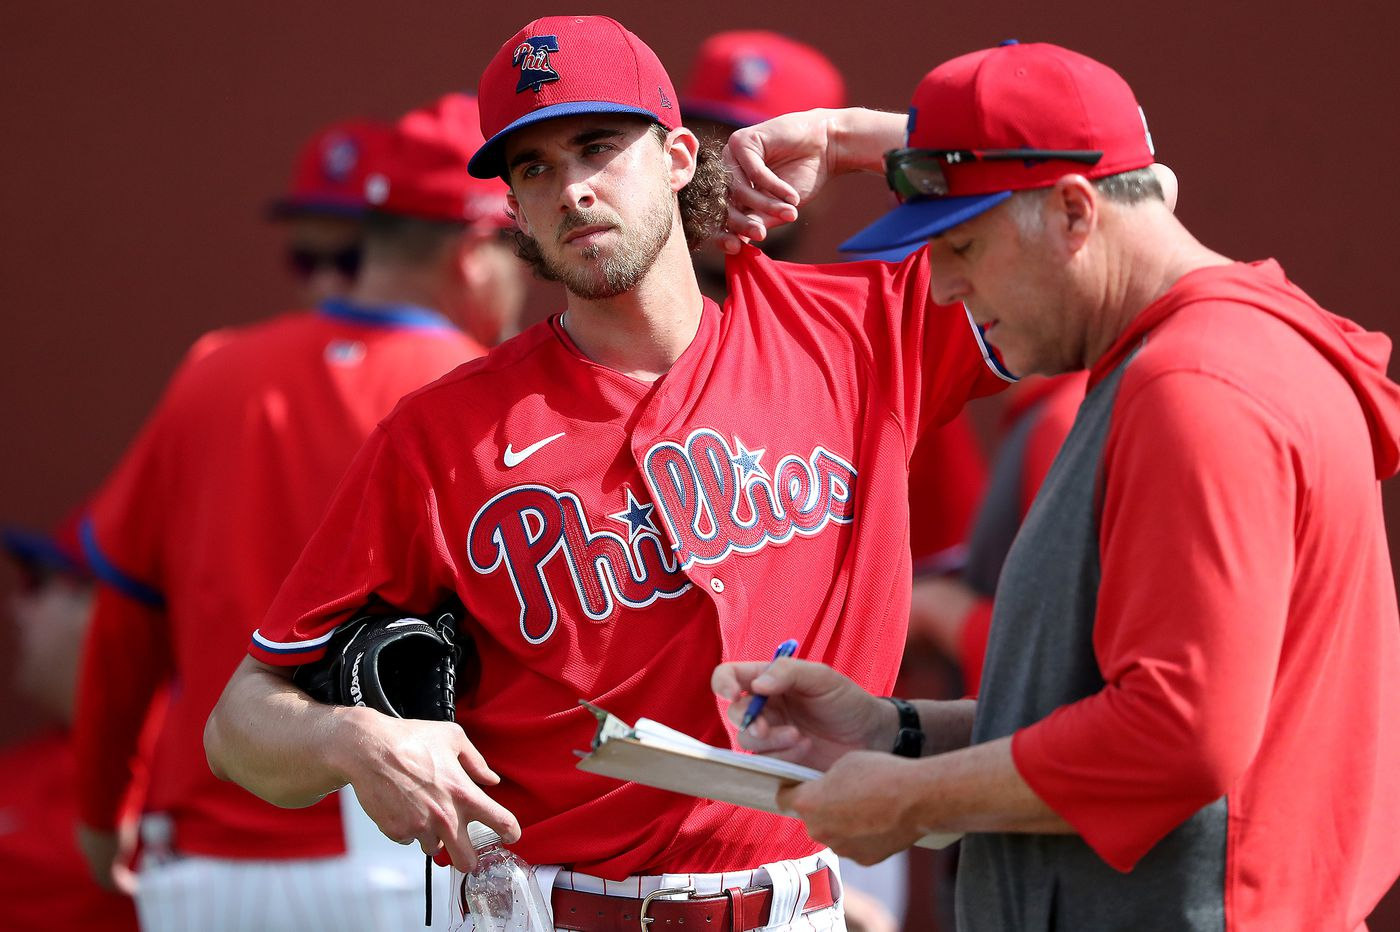 Aaron Nola prefers new Phillies pitching coach Bryan Price over data-driven Chris Young